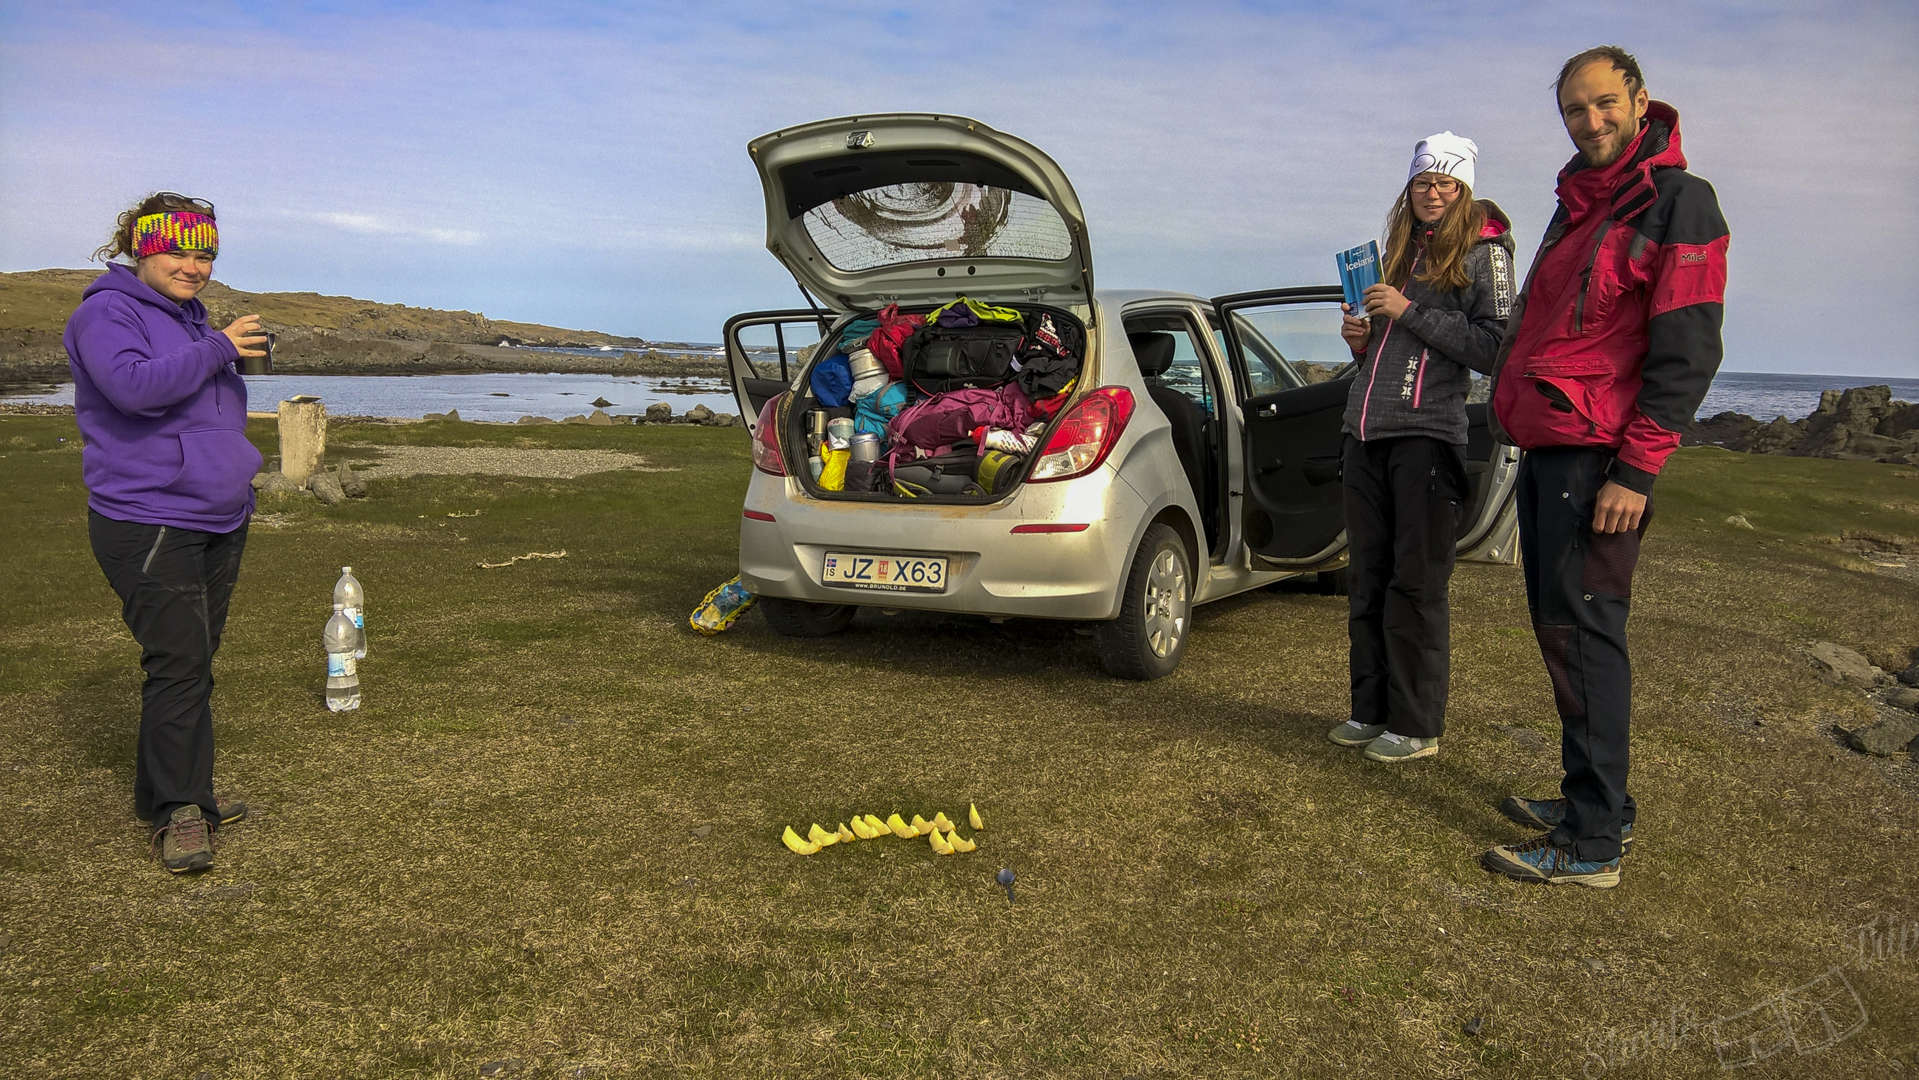 iceland car rental, tiny car iceland, iceland travel by car, iceland budget car, iceland cheap car